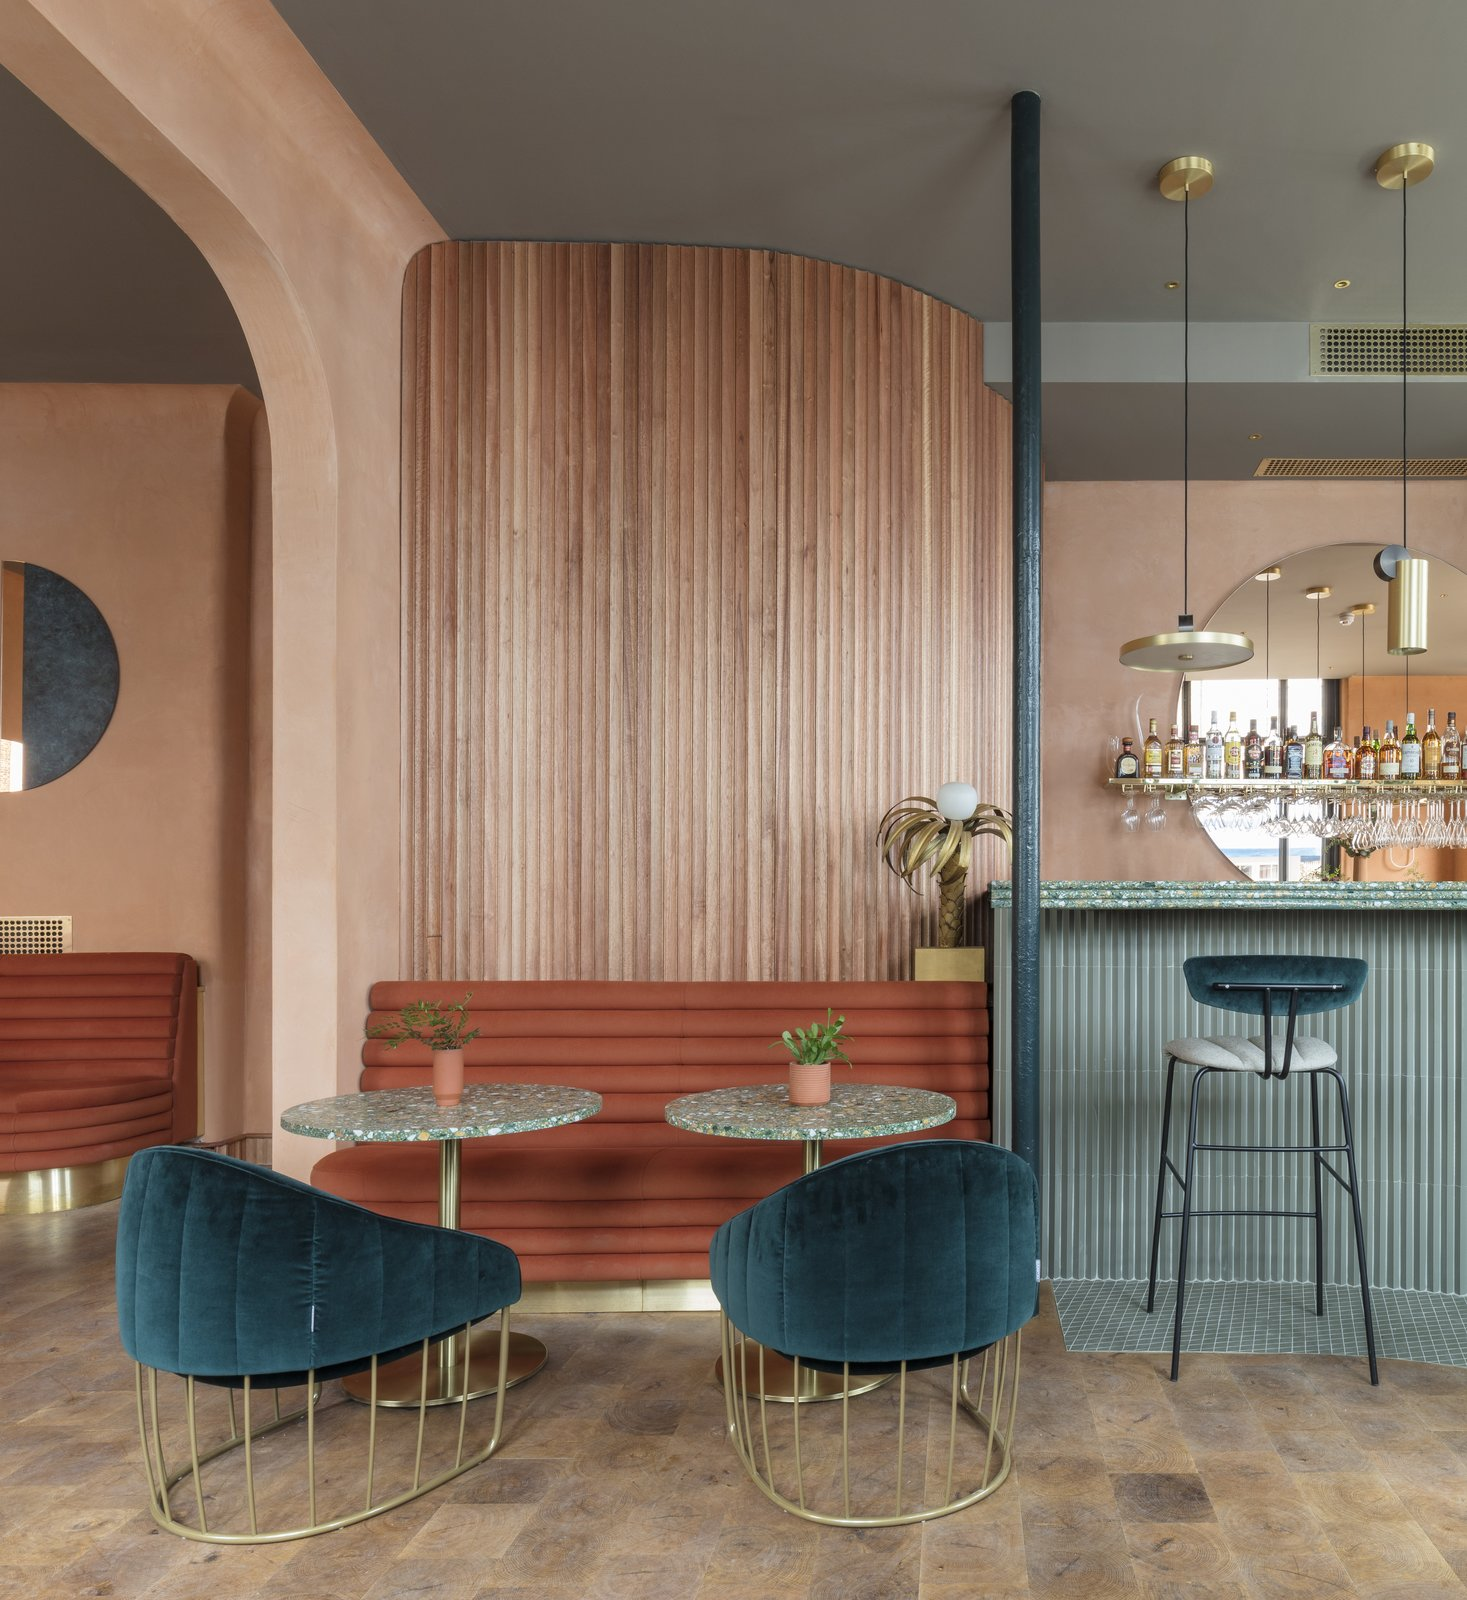 Scalloped Sapele wood slats on the walls add a textural organic element—the tubular design a running motif in the design.